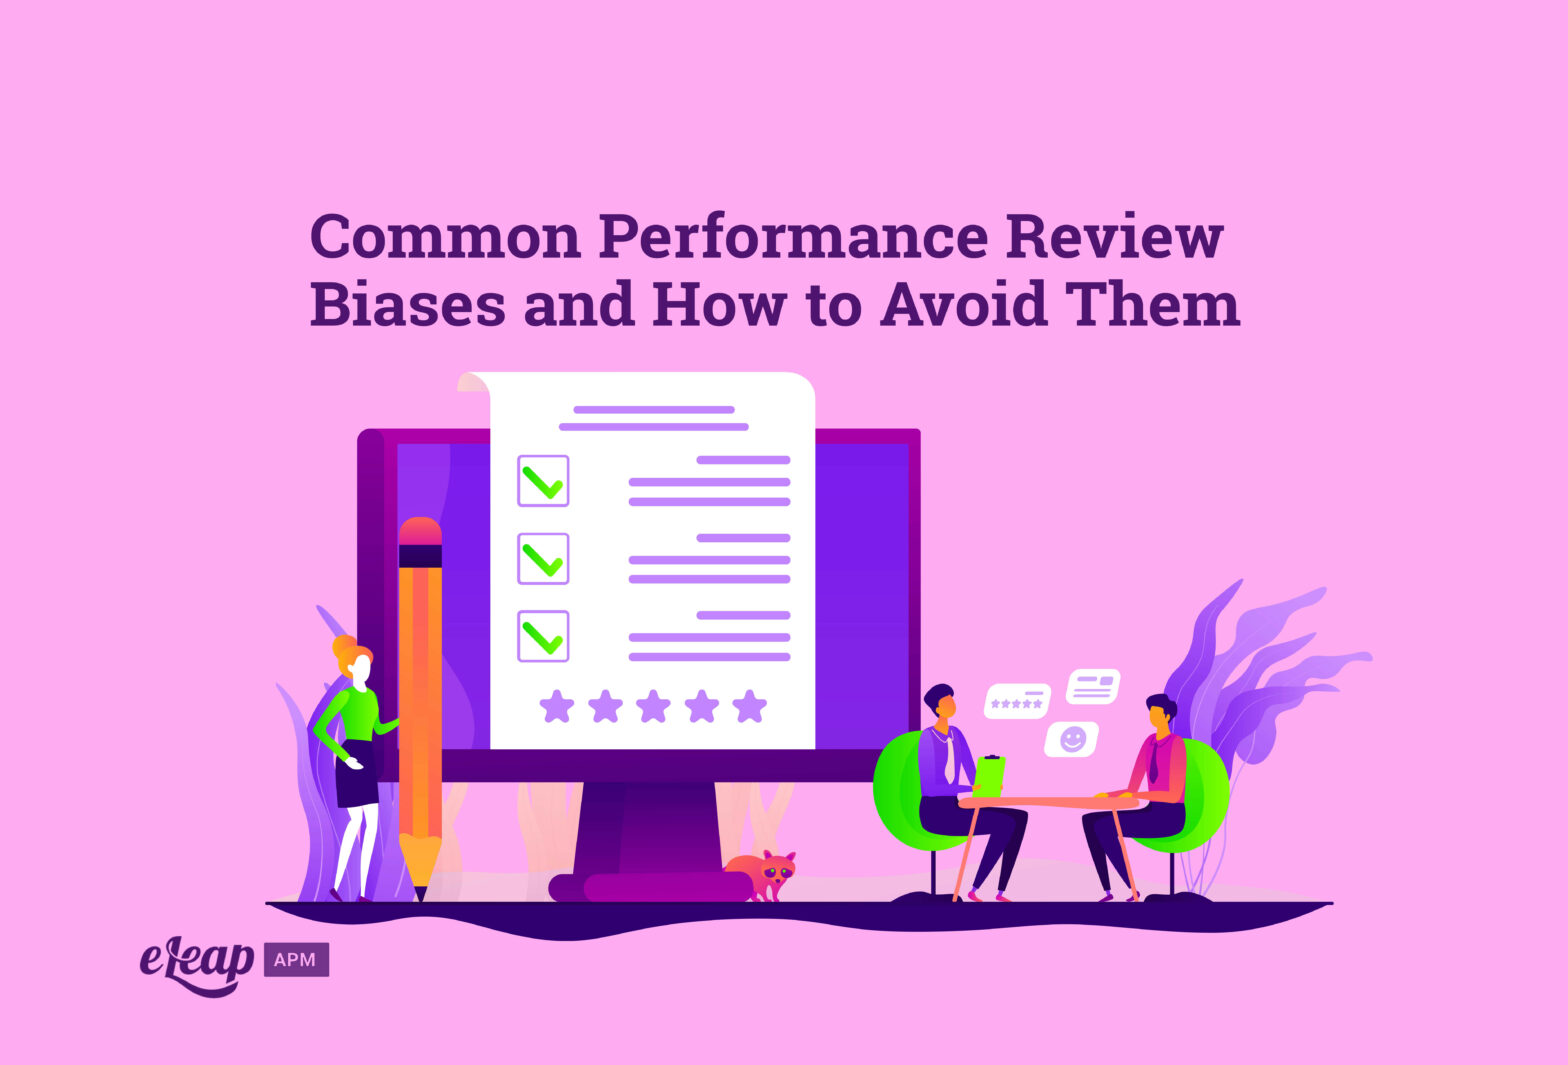 Common Performance Review Biases and How to Avoid Them